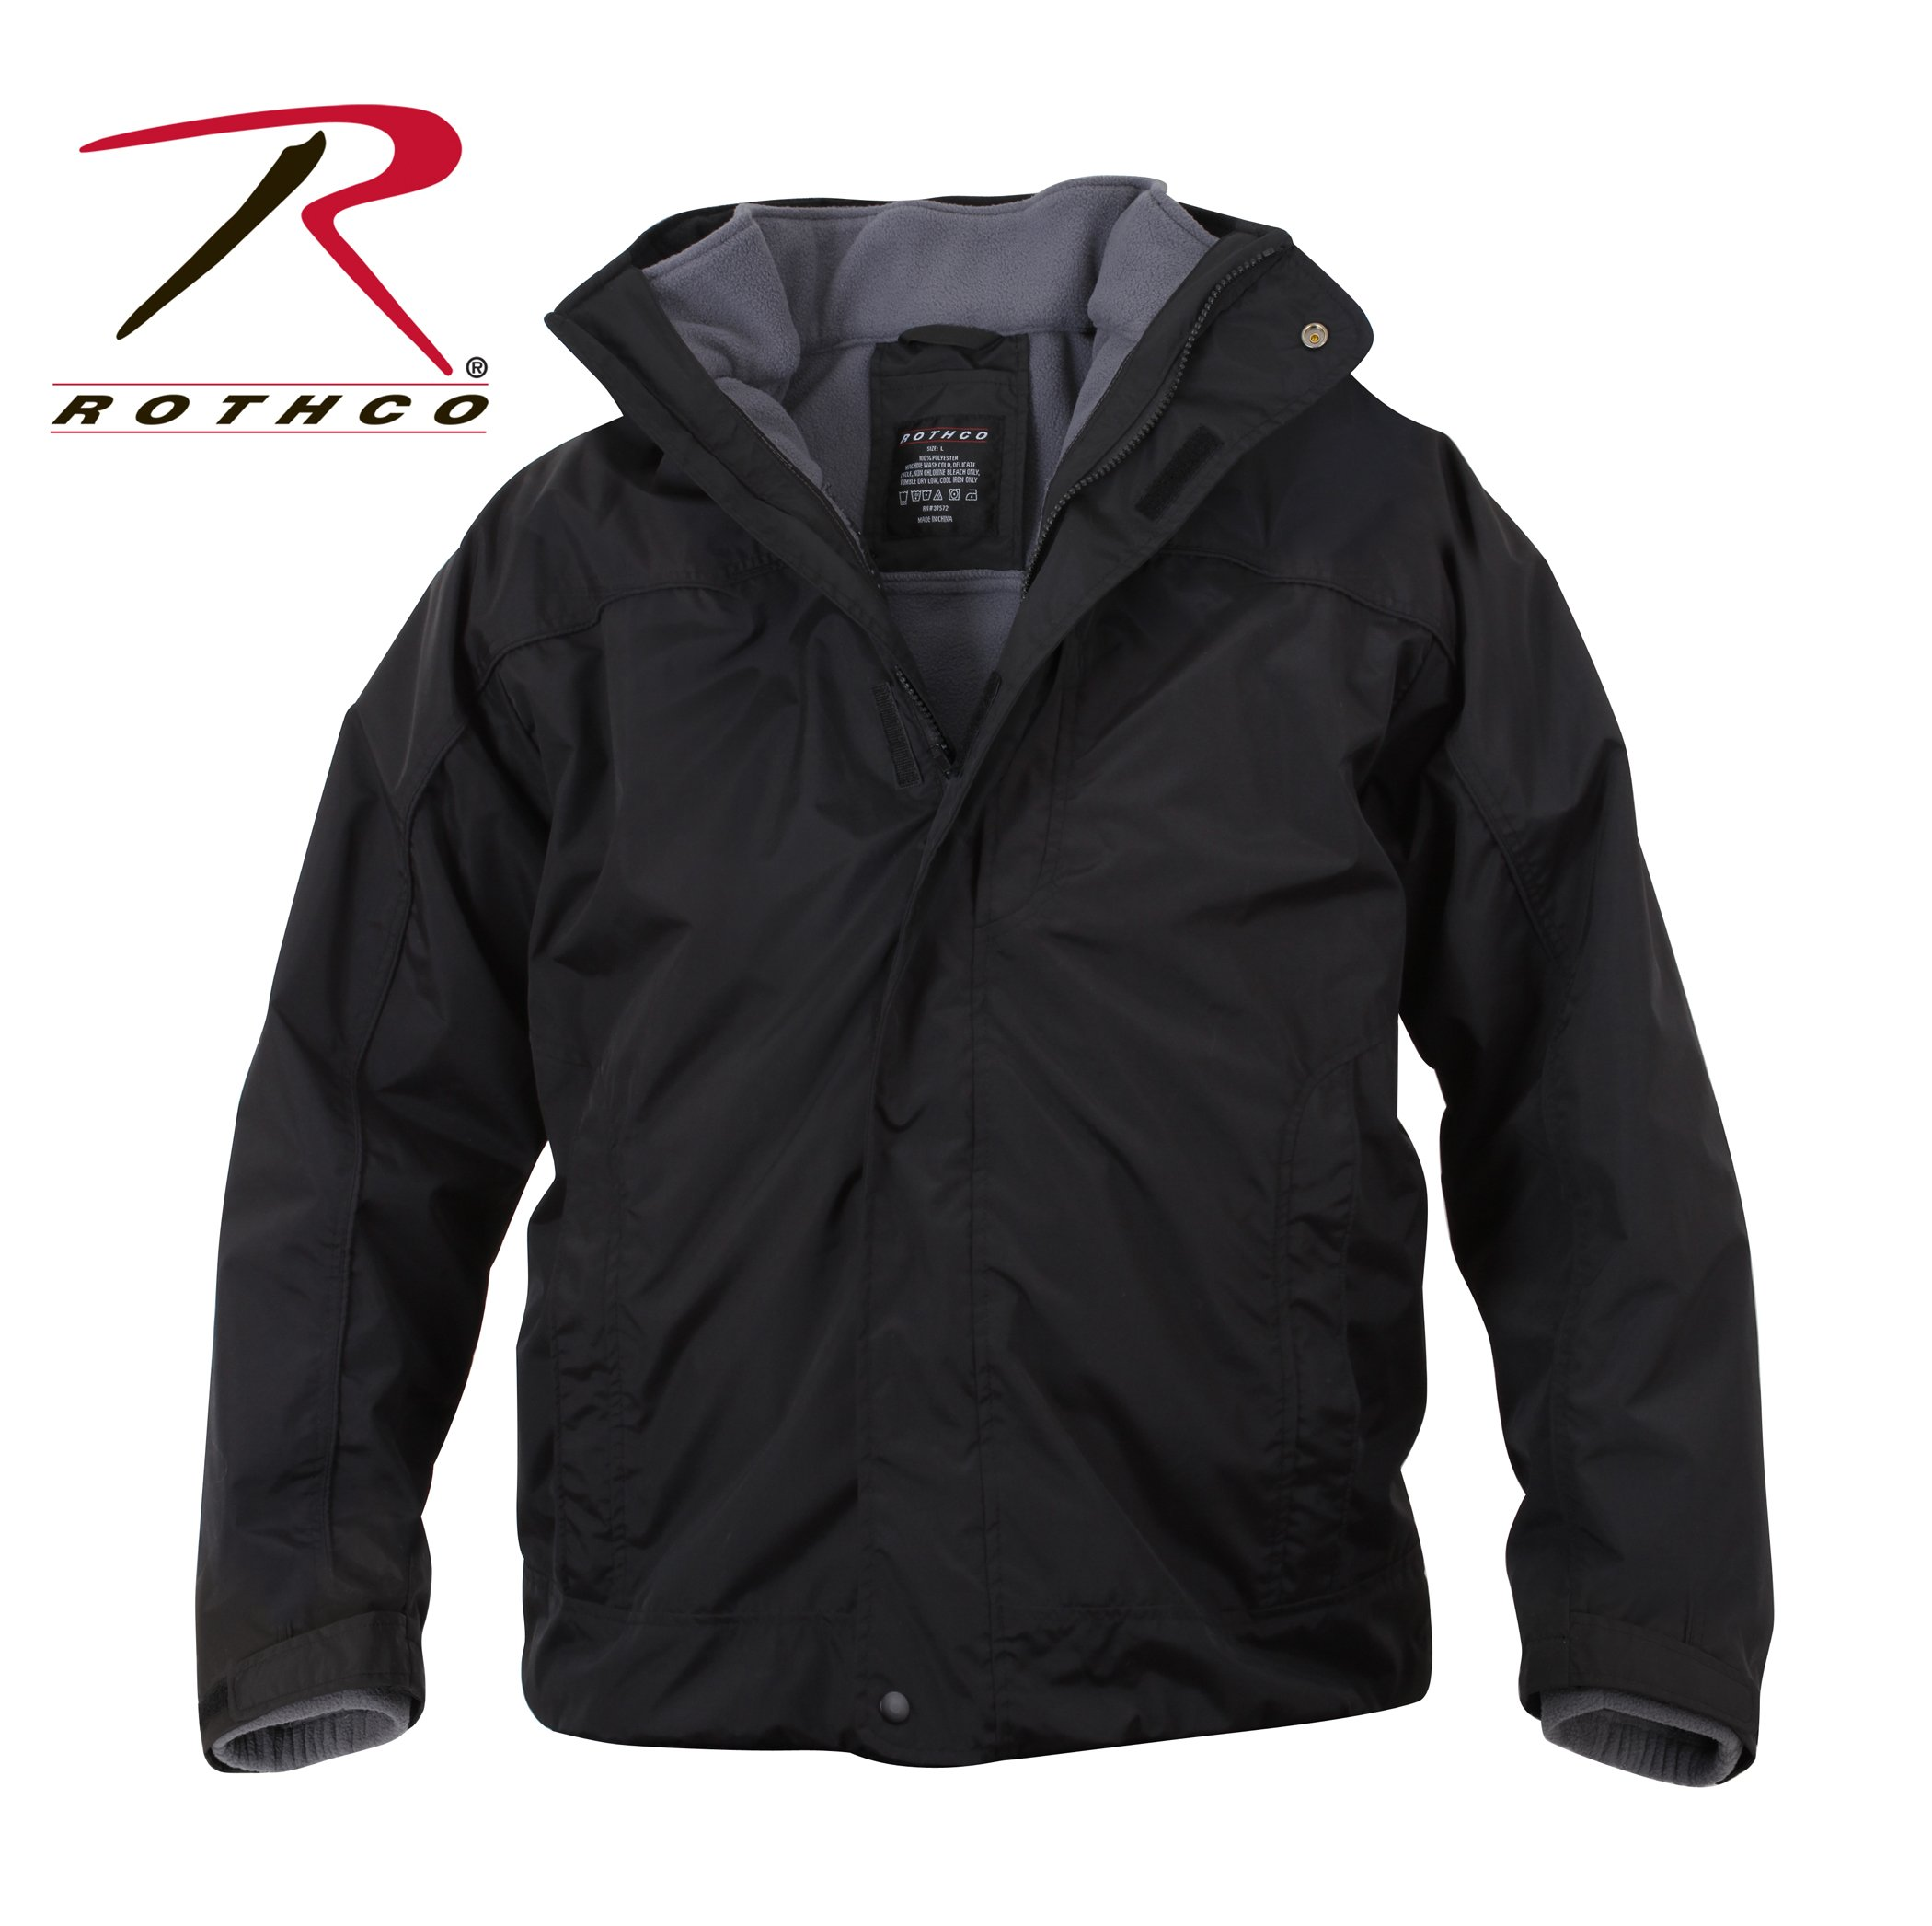 Rothco All Weather 3 In 1 Jacket, Black, X-Large